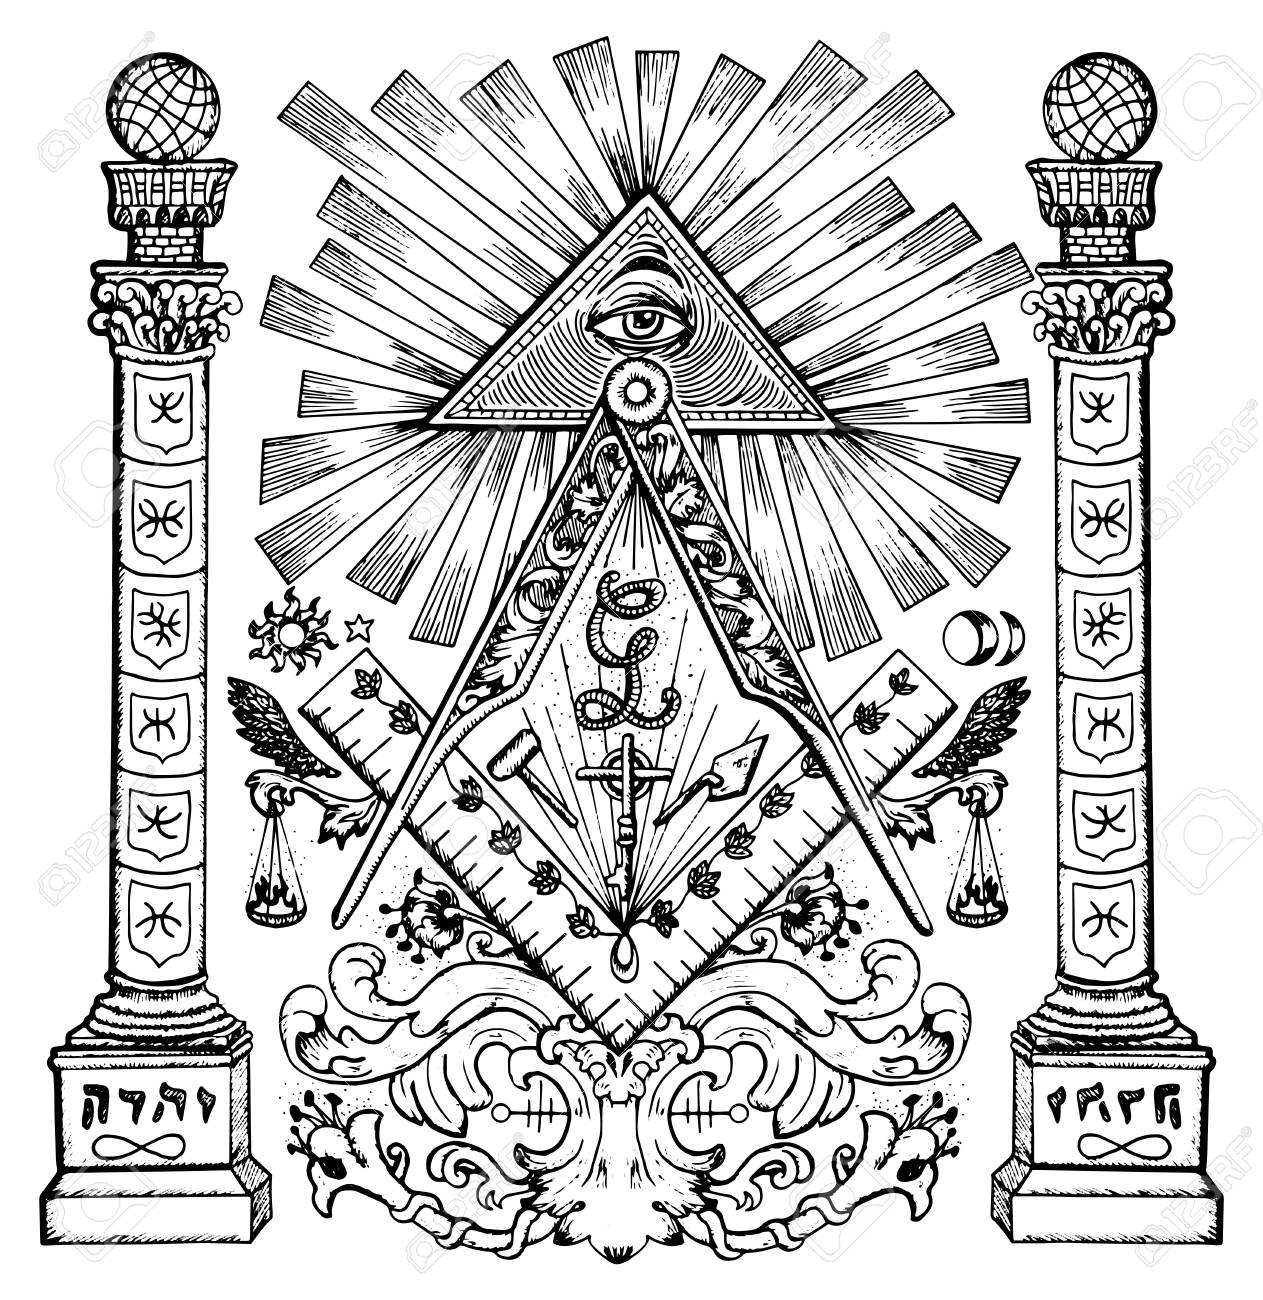 Graphic Illustration With Mason Mysterious Symbols Freemasonry